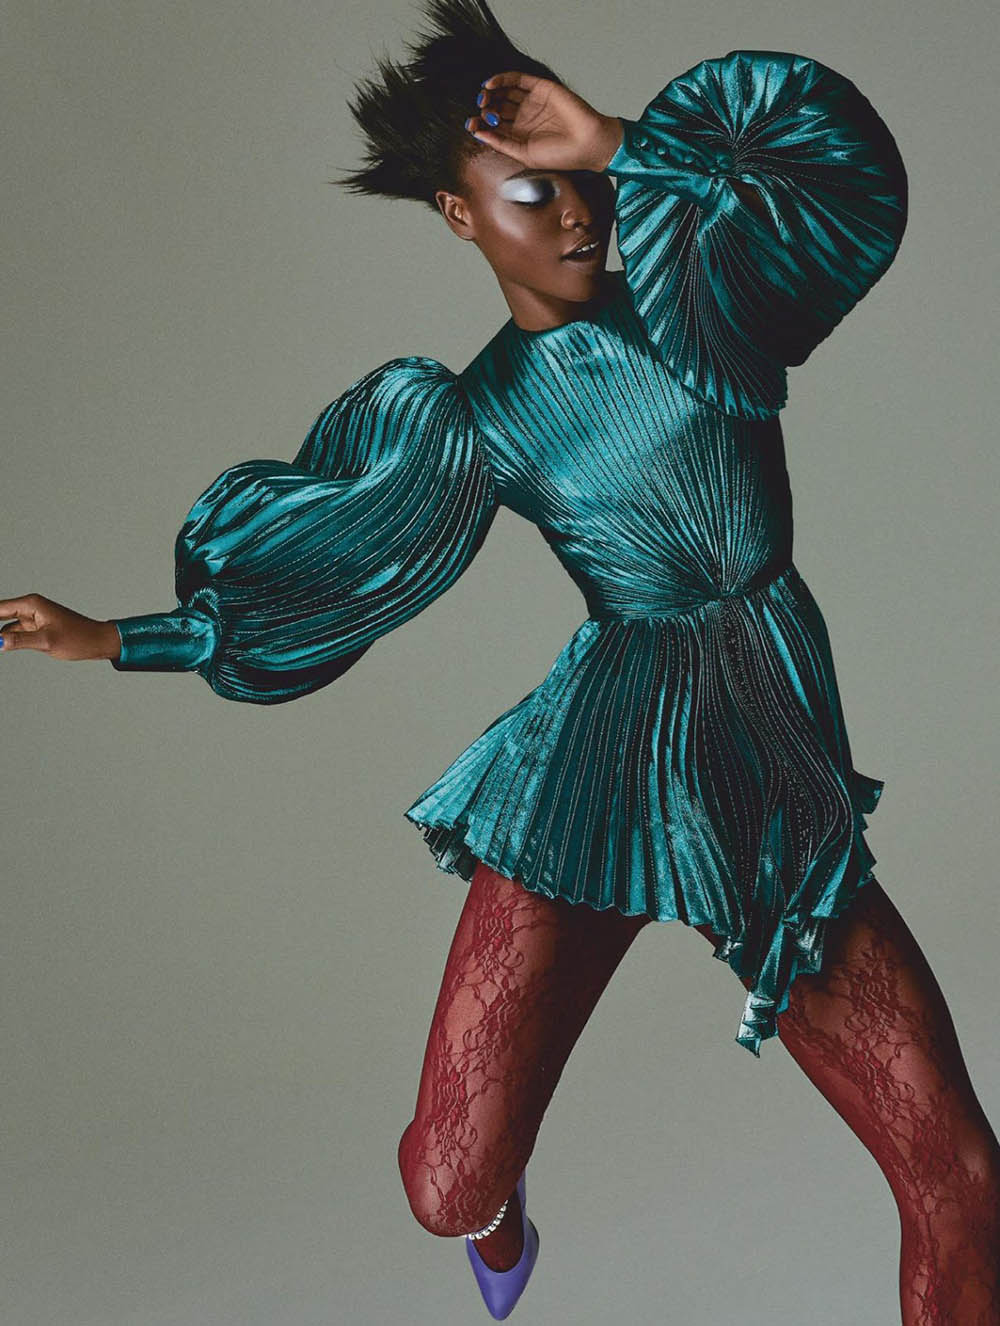 Olamide Ogundele by Daniel Clavero for Elle UK October 2019